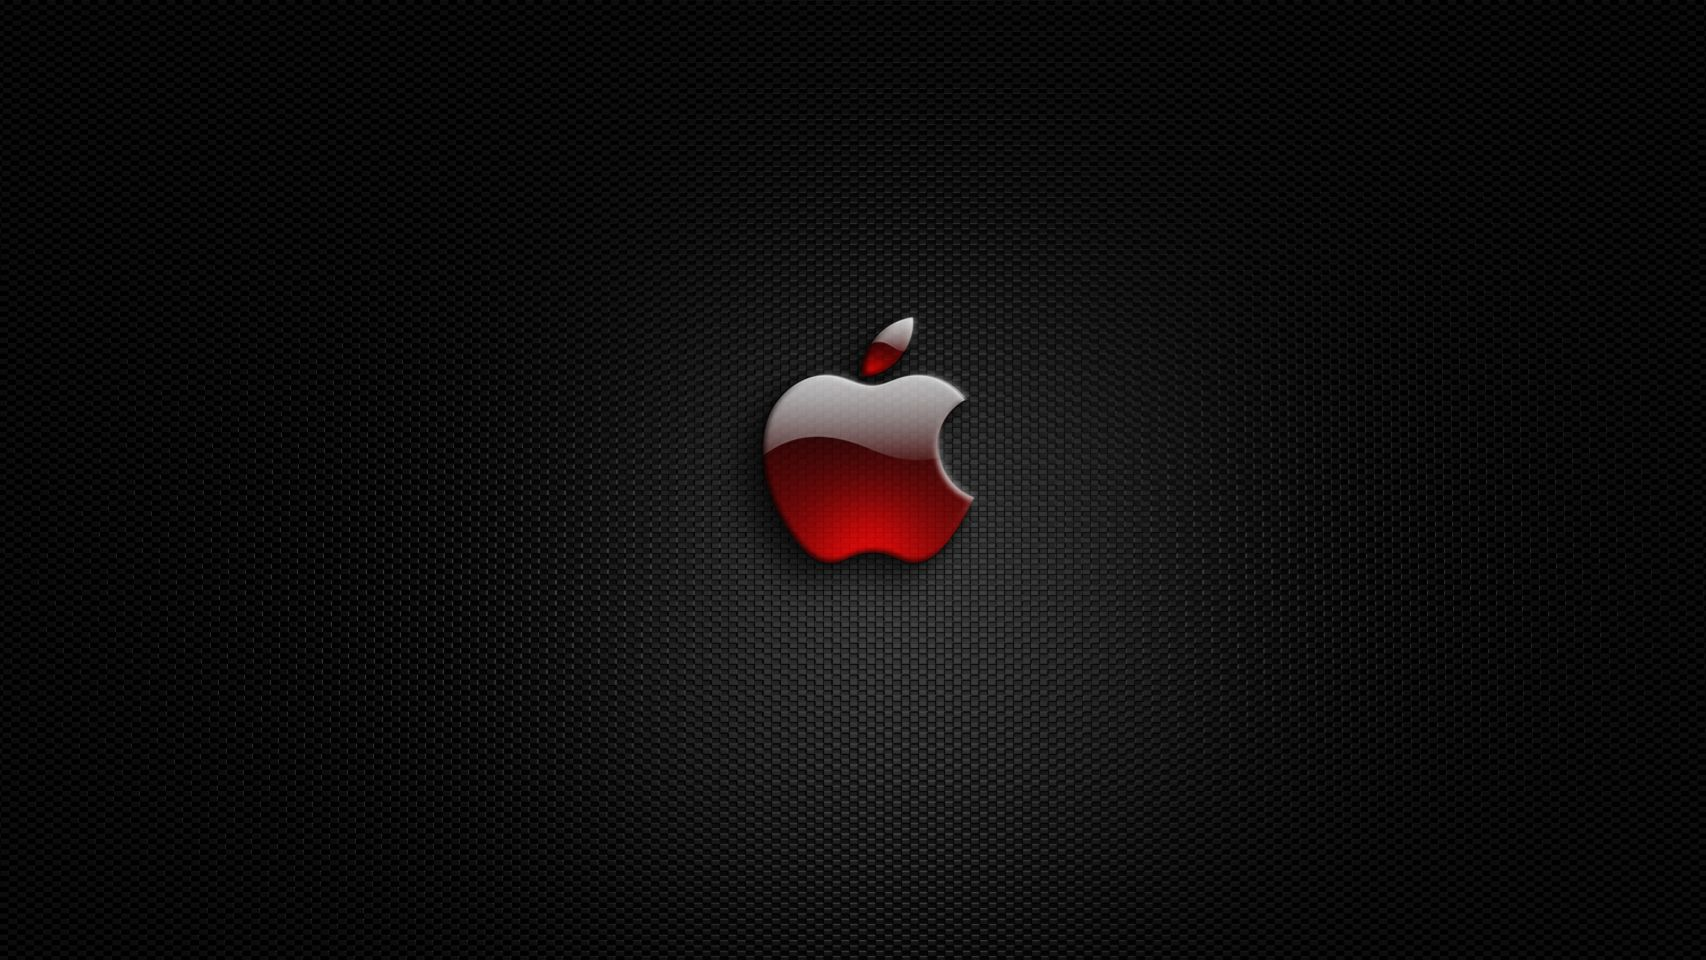 red apple hd wallpapers first hd wallpapers 1024×768 red apple